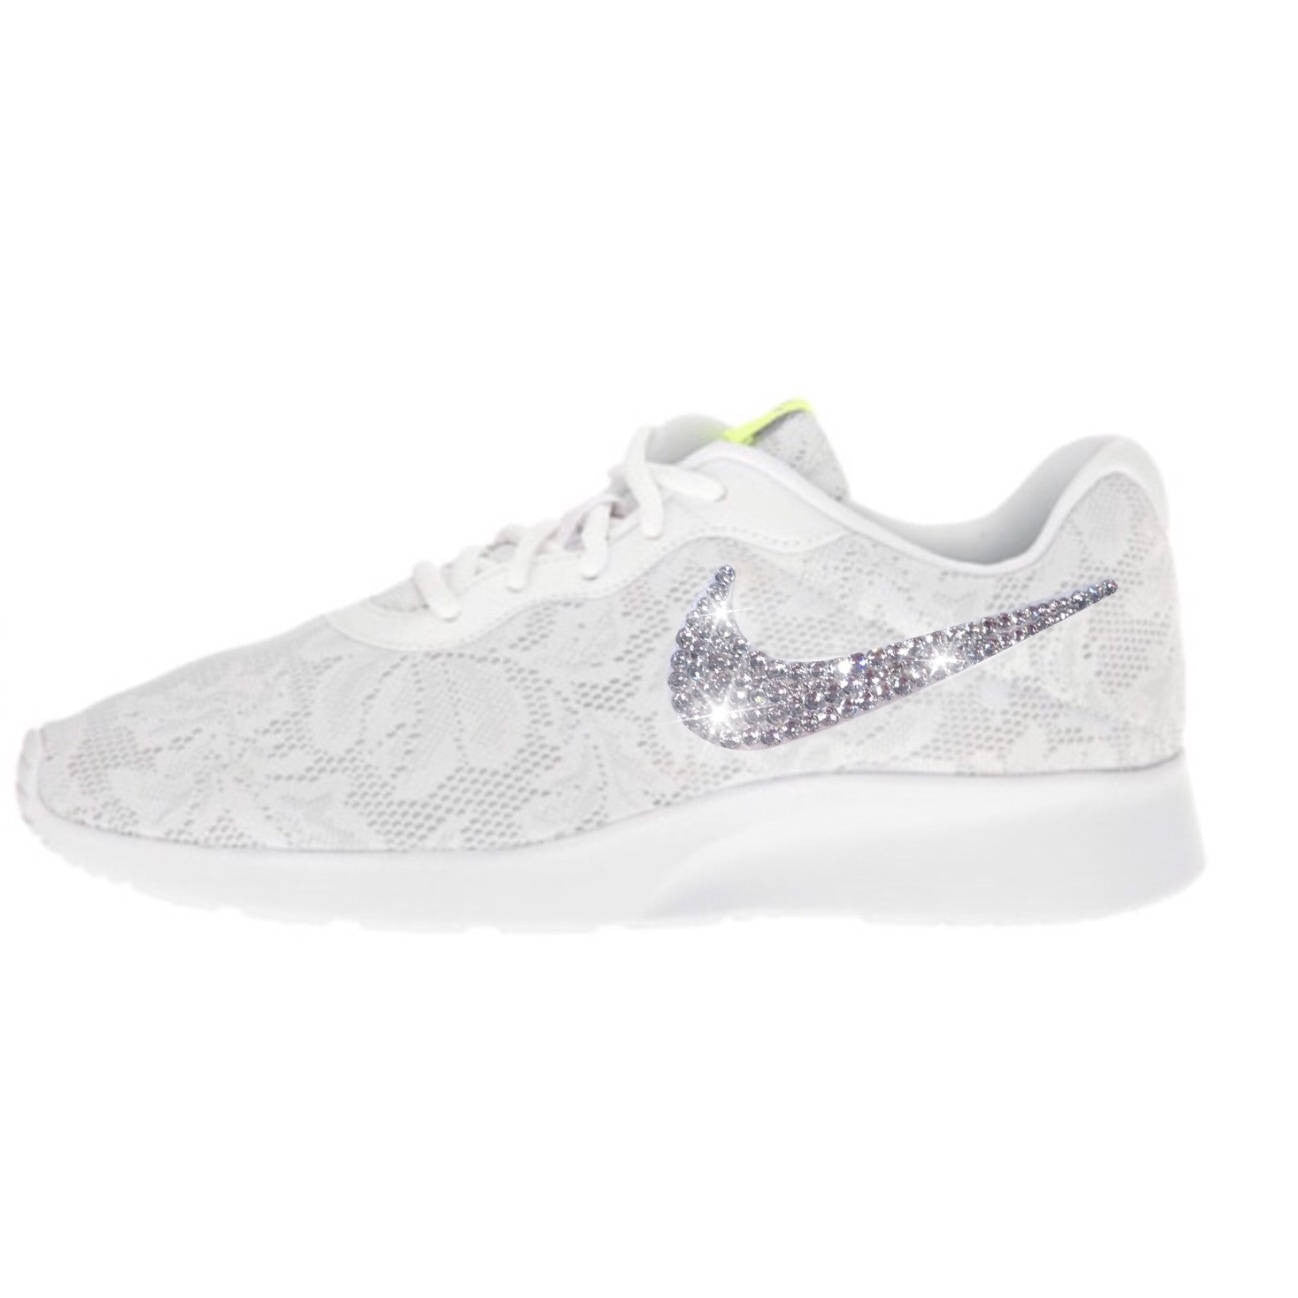 Bling Nike Tanjun ENG Shoes with Swarovski Crystals   White Lace    Bedazzled Shoes with Rhinestones ... da06b4b46c8f